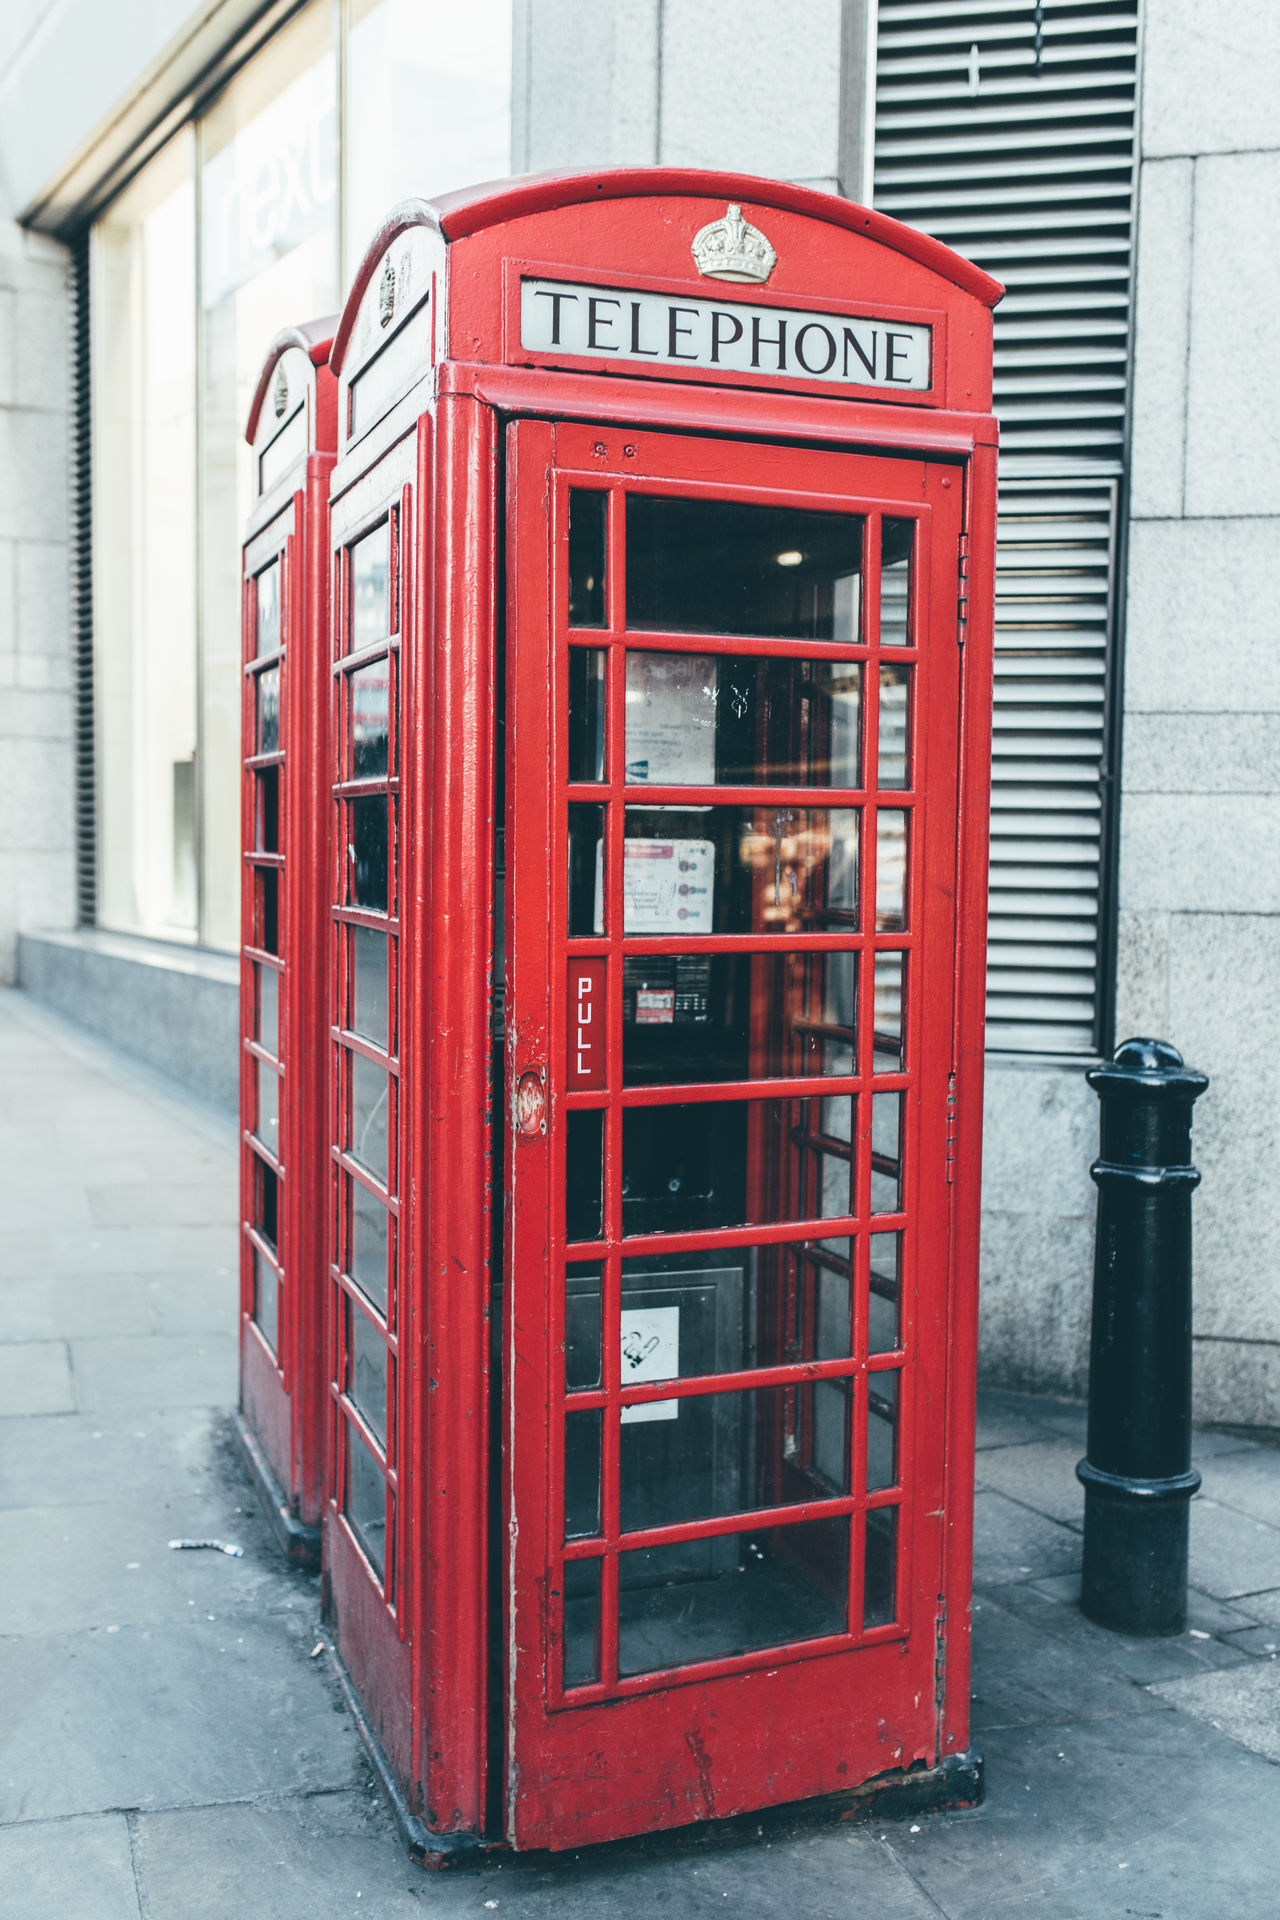 Built Structure Communication Connection London London Lifestyle London Phone Box London Style  London Trip London_only Londonlife No People Outdoors Pay Phone Red Red Red Phone Red Phone Booth Red Phone Box Red Phone Boxes Technology Telecommunications Equipment Telephone Telephone Booth Telephone Box Travel London